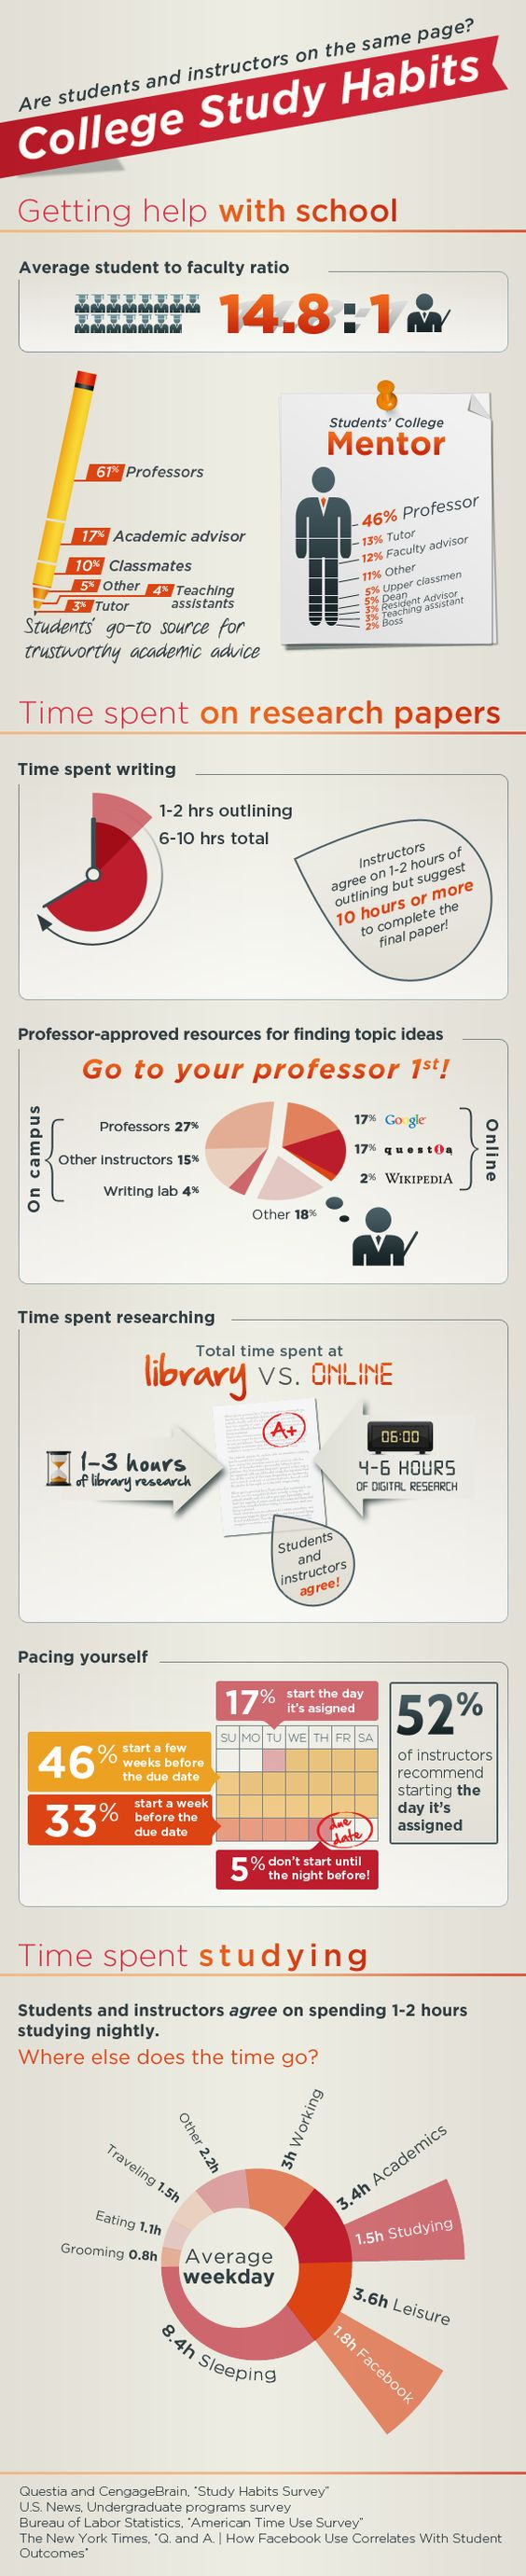 college study habits infographic lifestyle study college study habits infographic